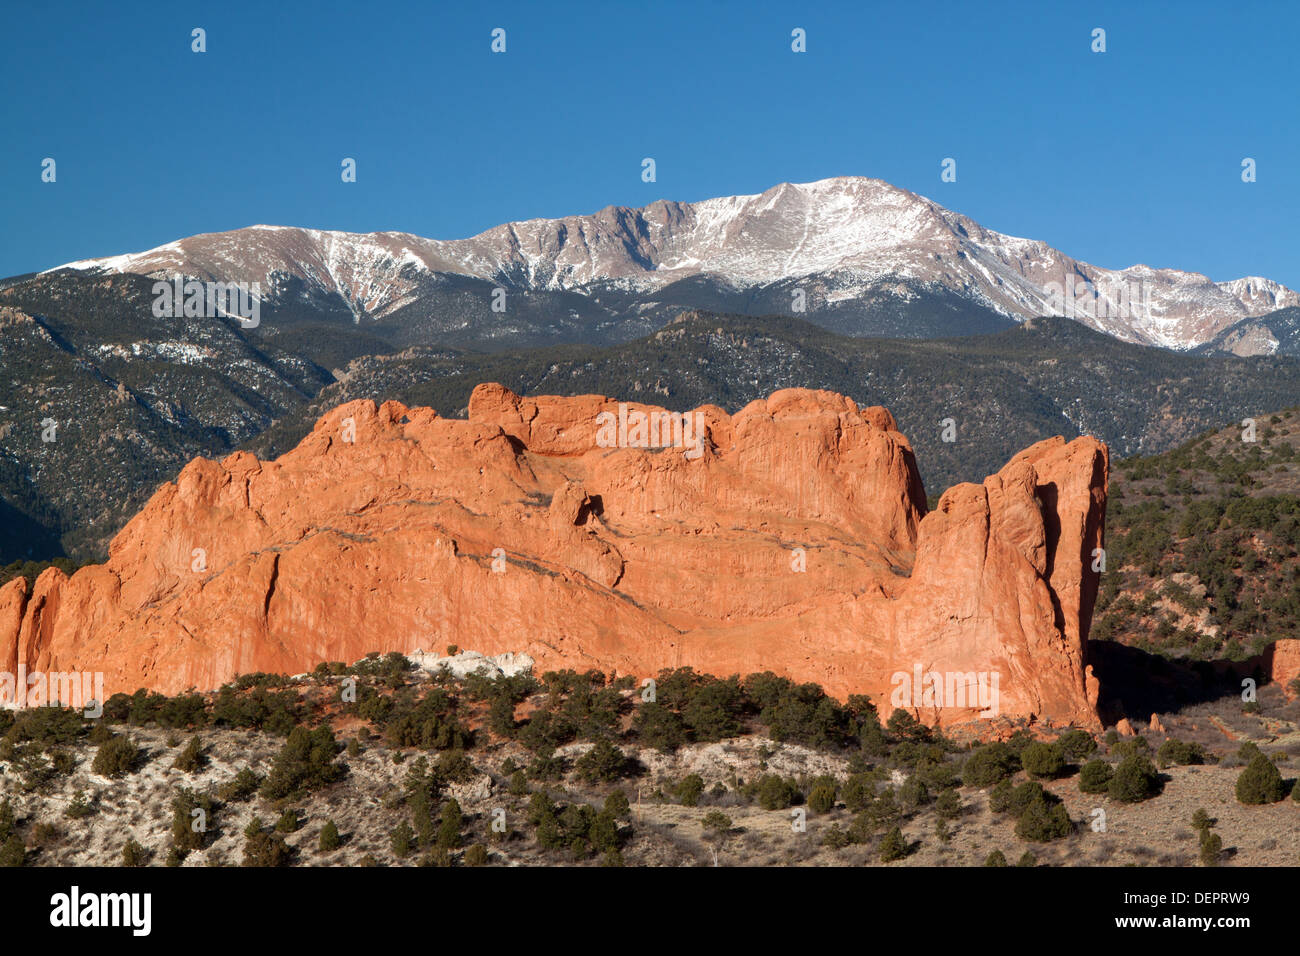 North Gateway Rock at Garden of the Gods Park in Colorado Springs, Colorado, USA, with Pikes Peak in background - Stock Image